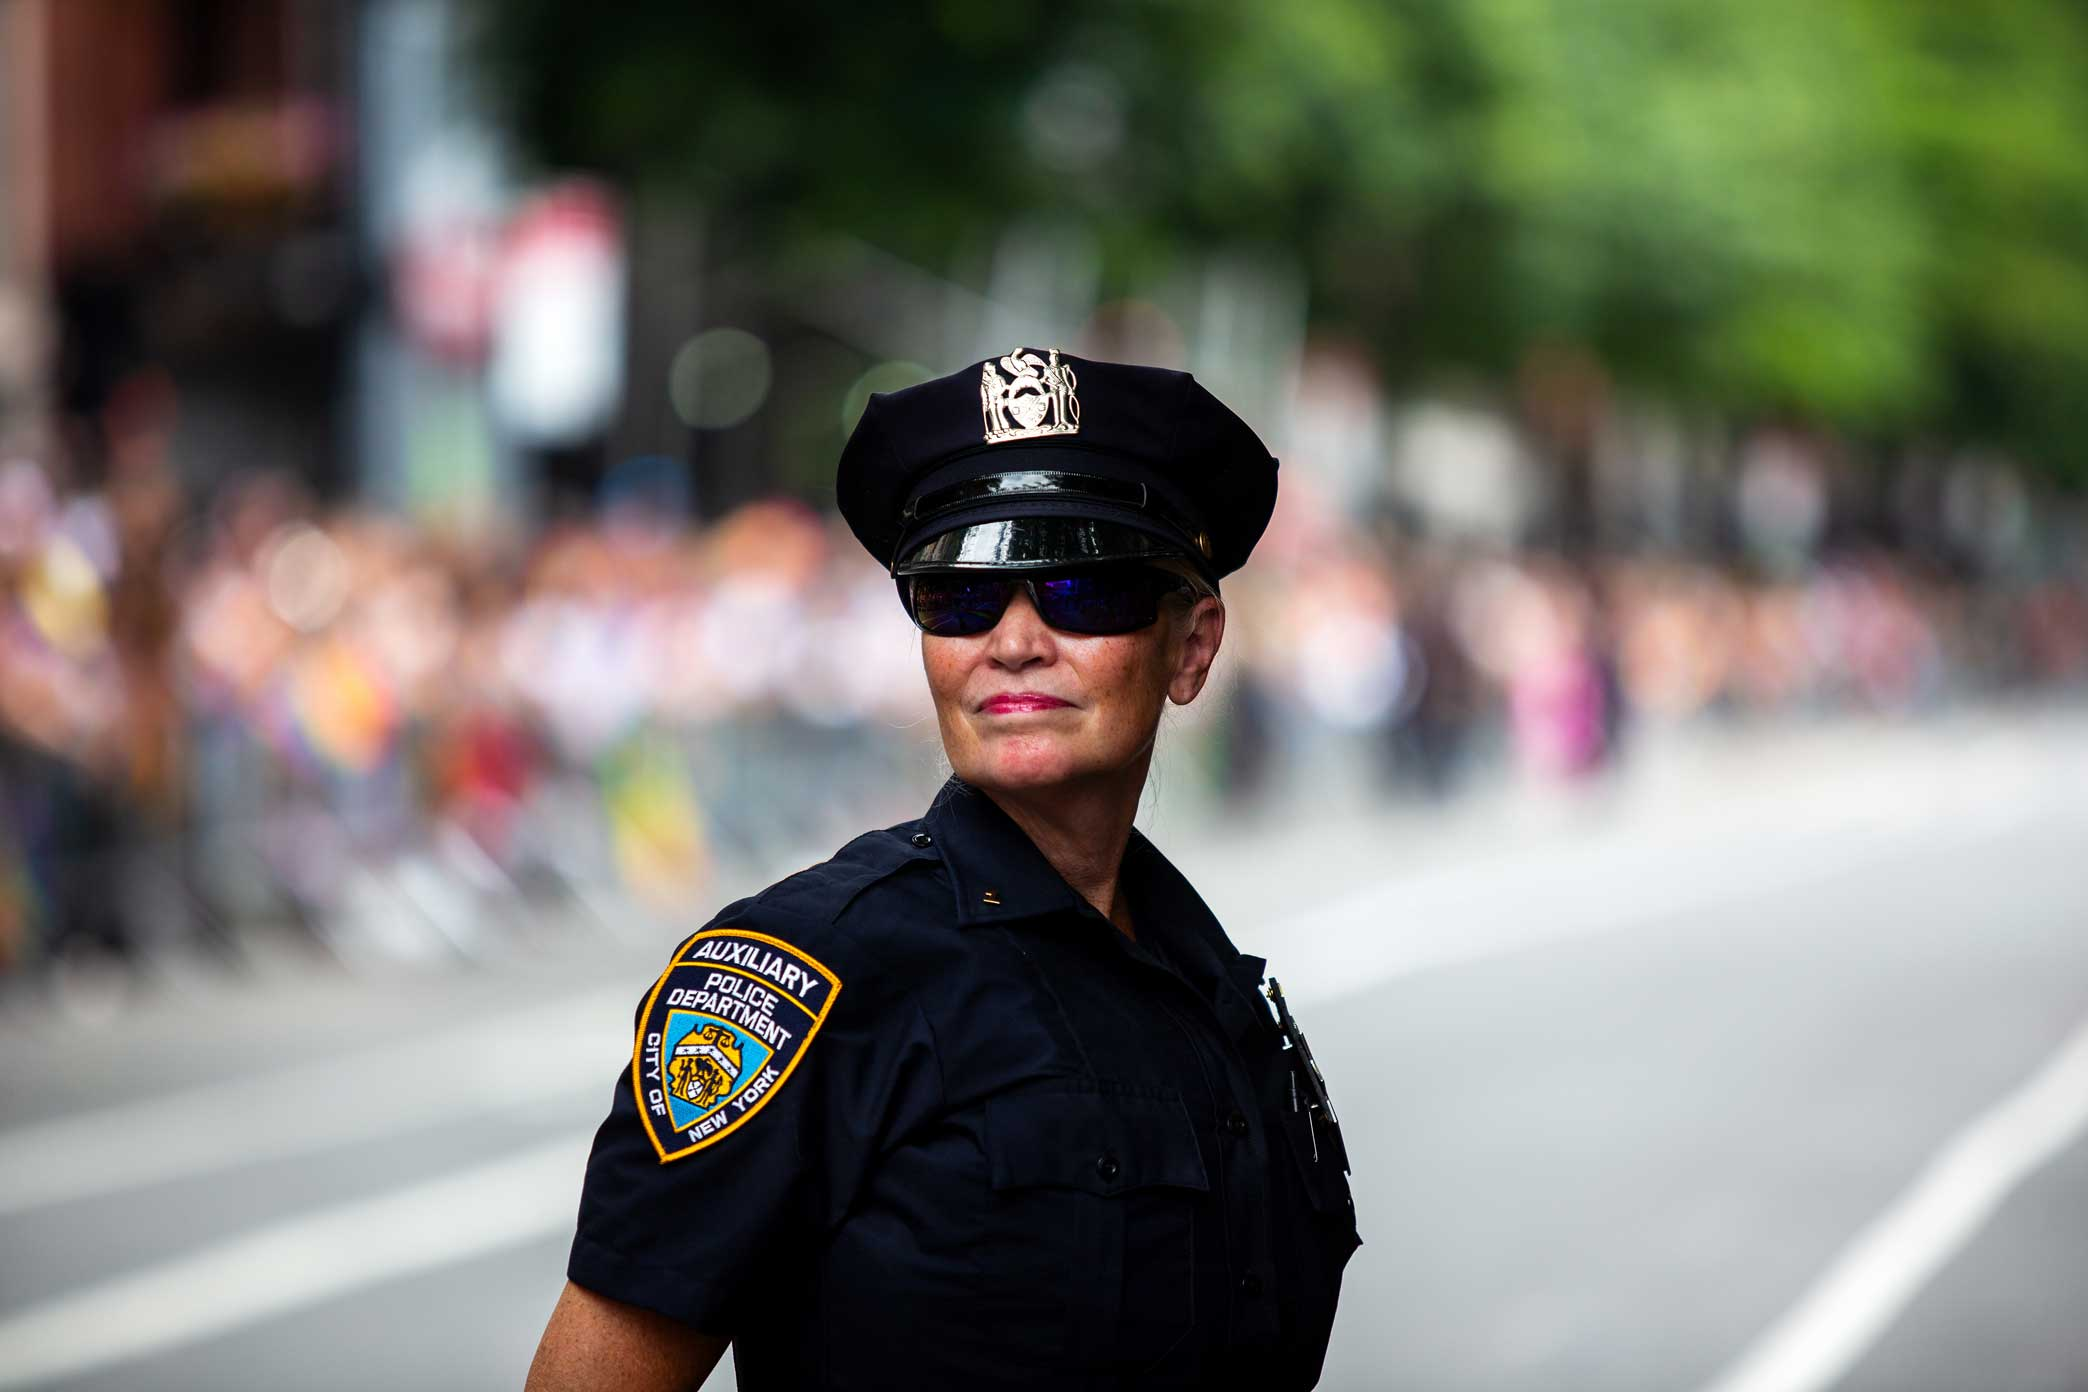 NYPD Auxiliary Officer.